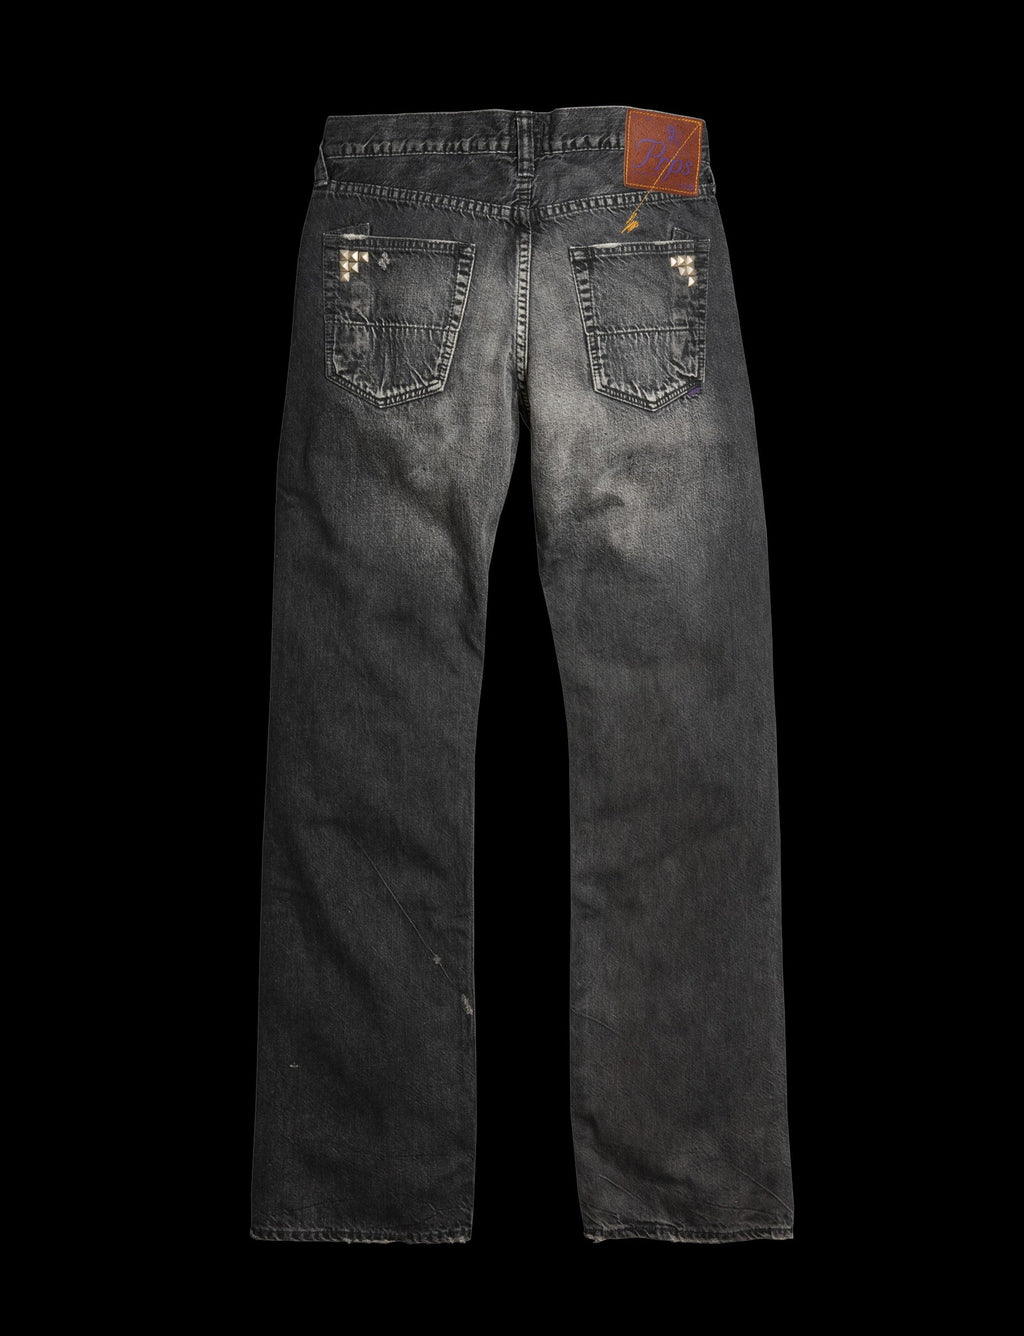 Prps - Barracuda - Oak Hill Strip - Jeans - Prps